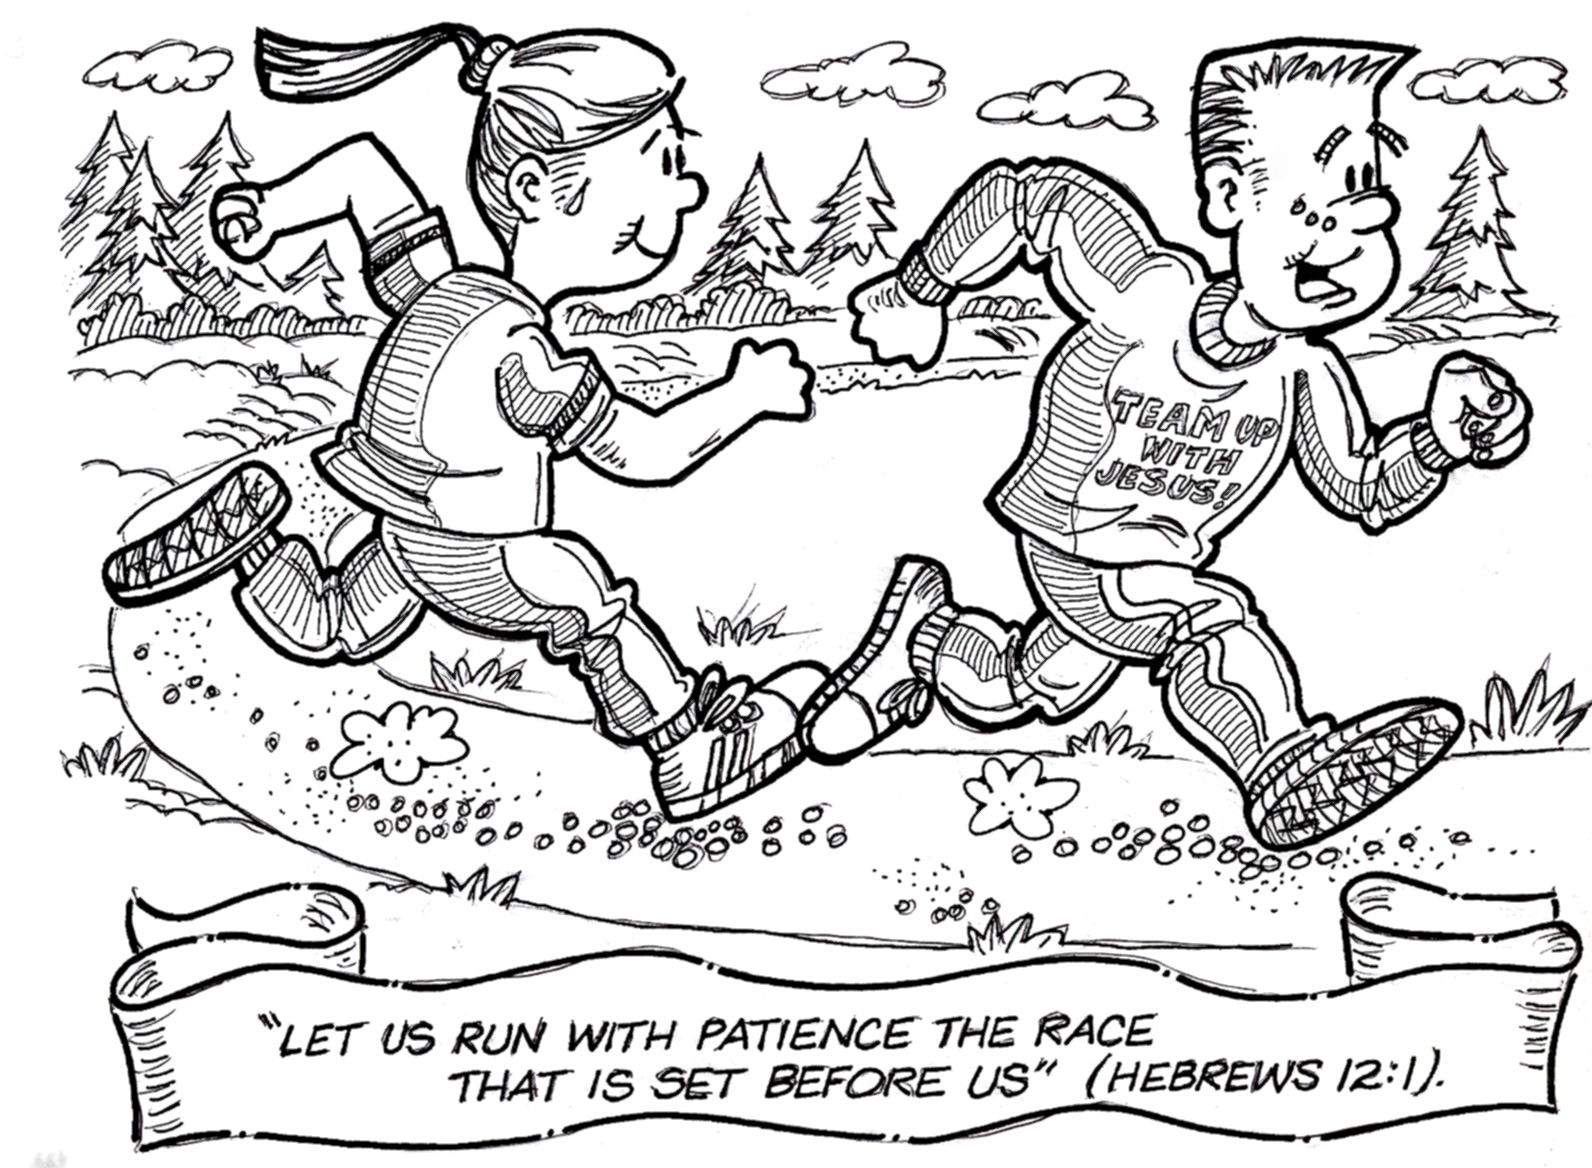 running race drawing at getdrawings com free for personal use